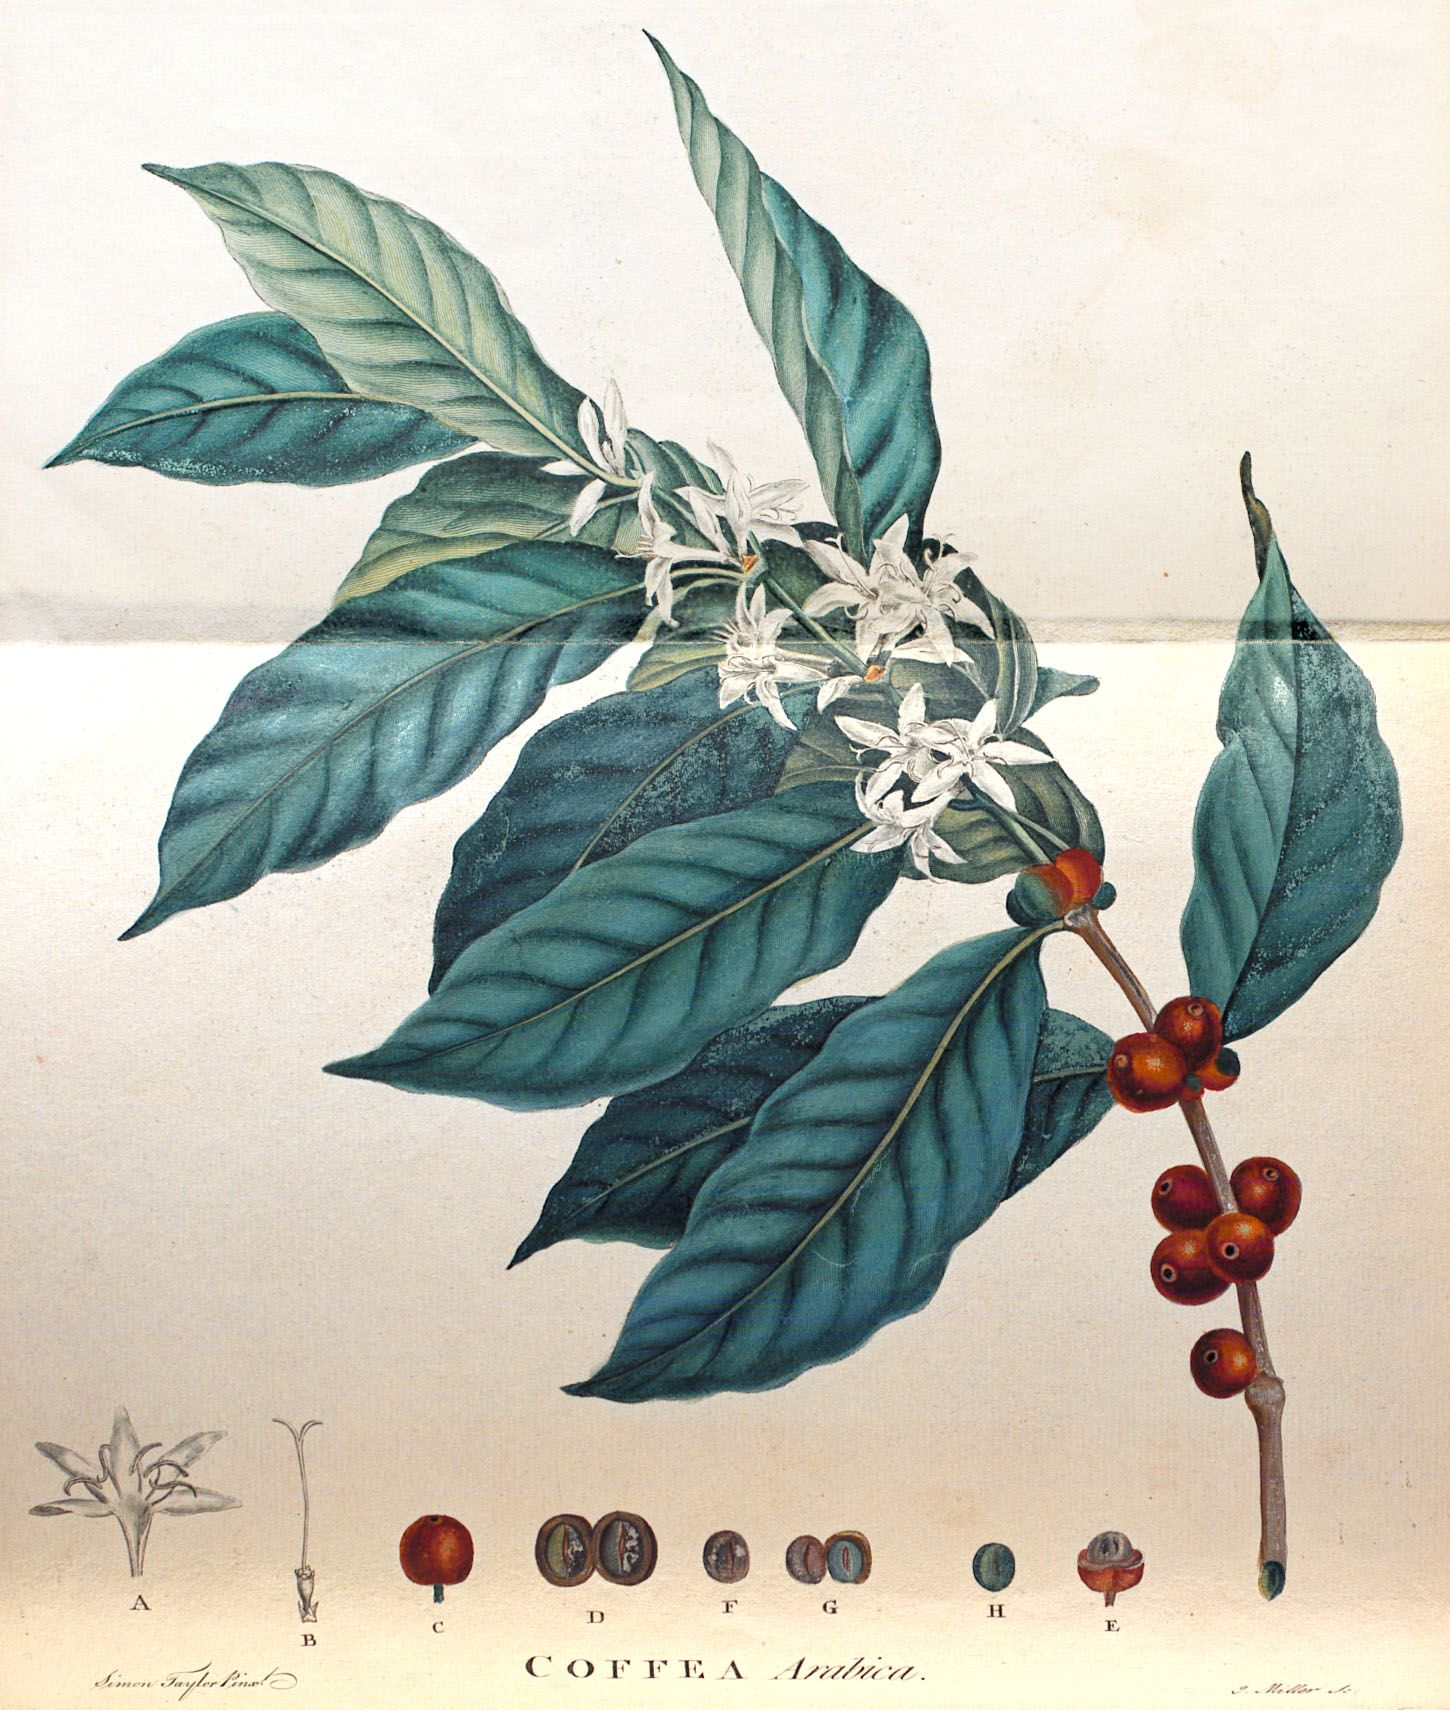 An illustration of a coffee plant, from An Historical